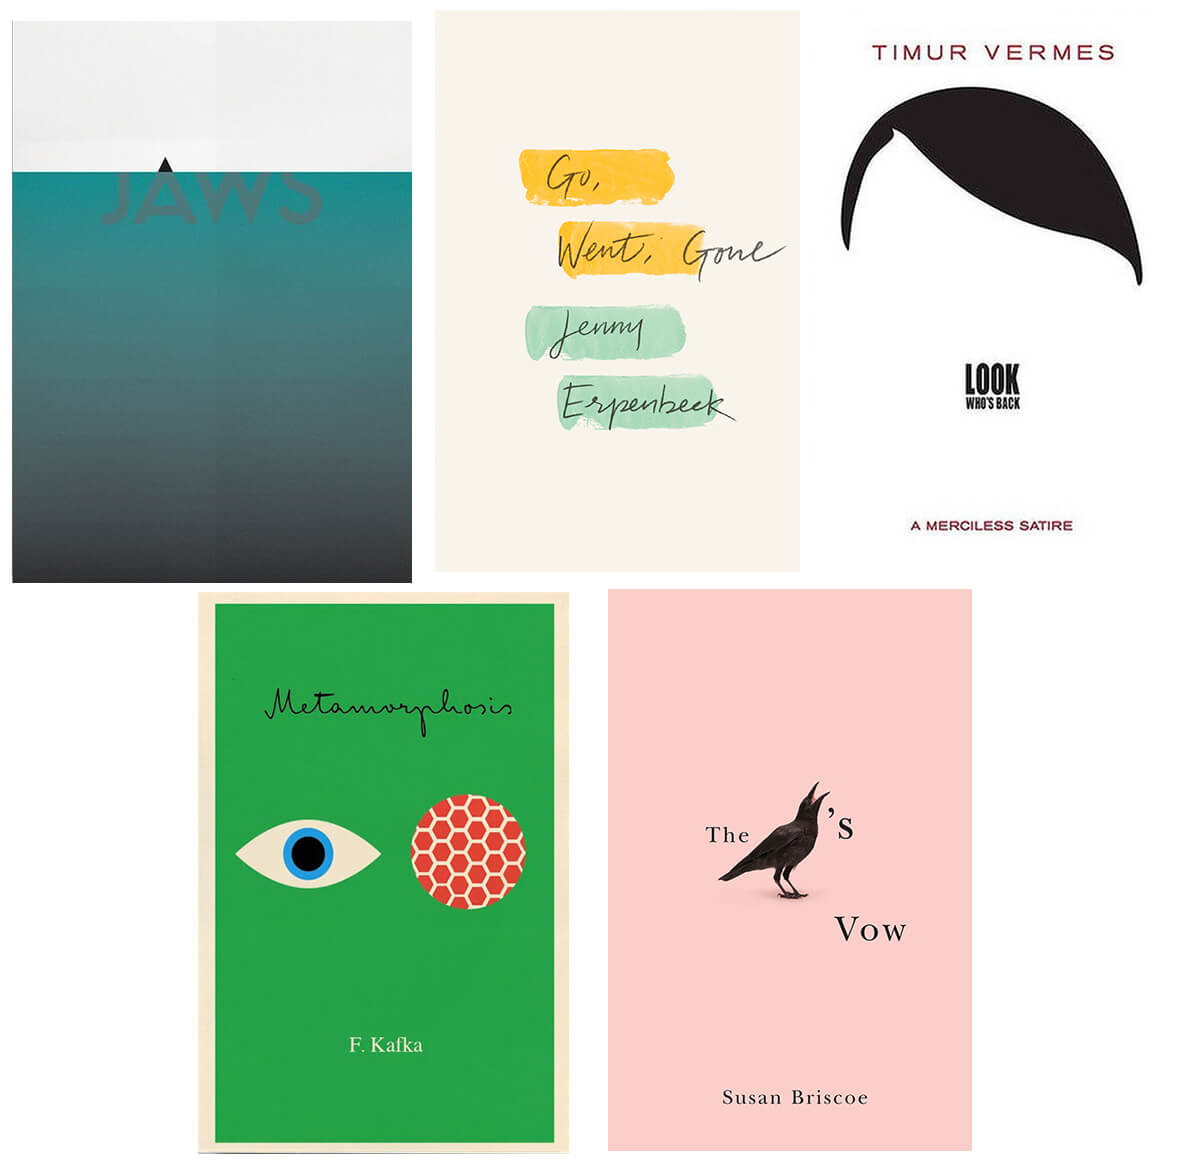 book cover ideas - minimalism